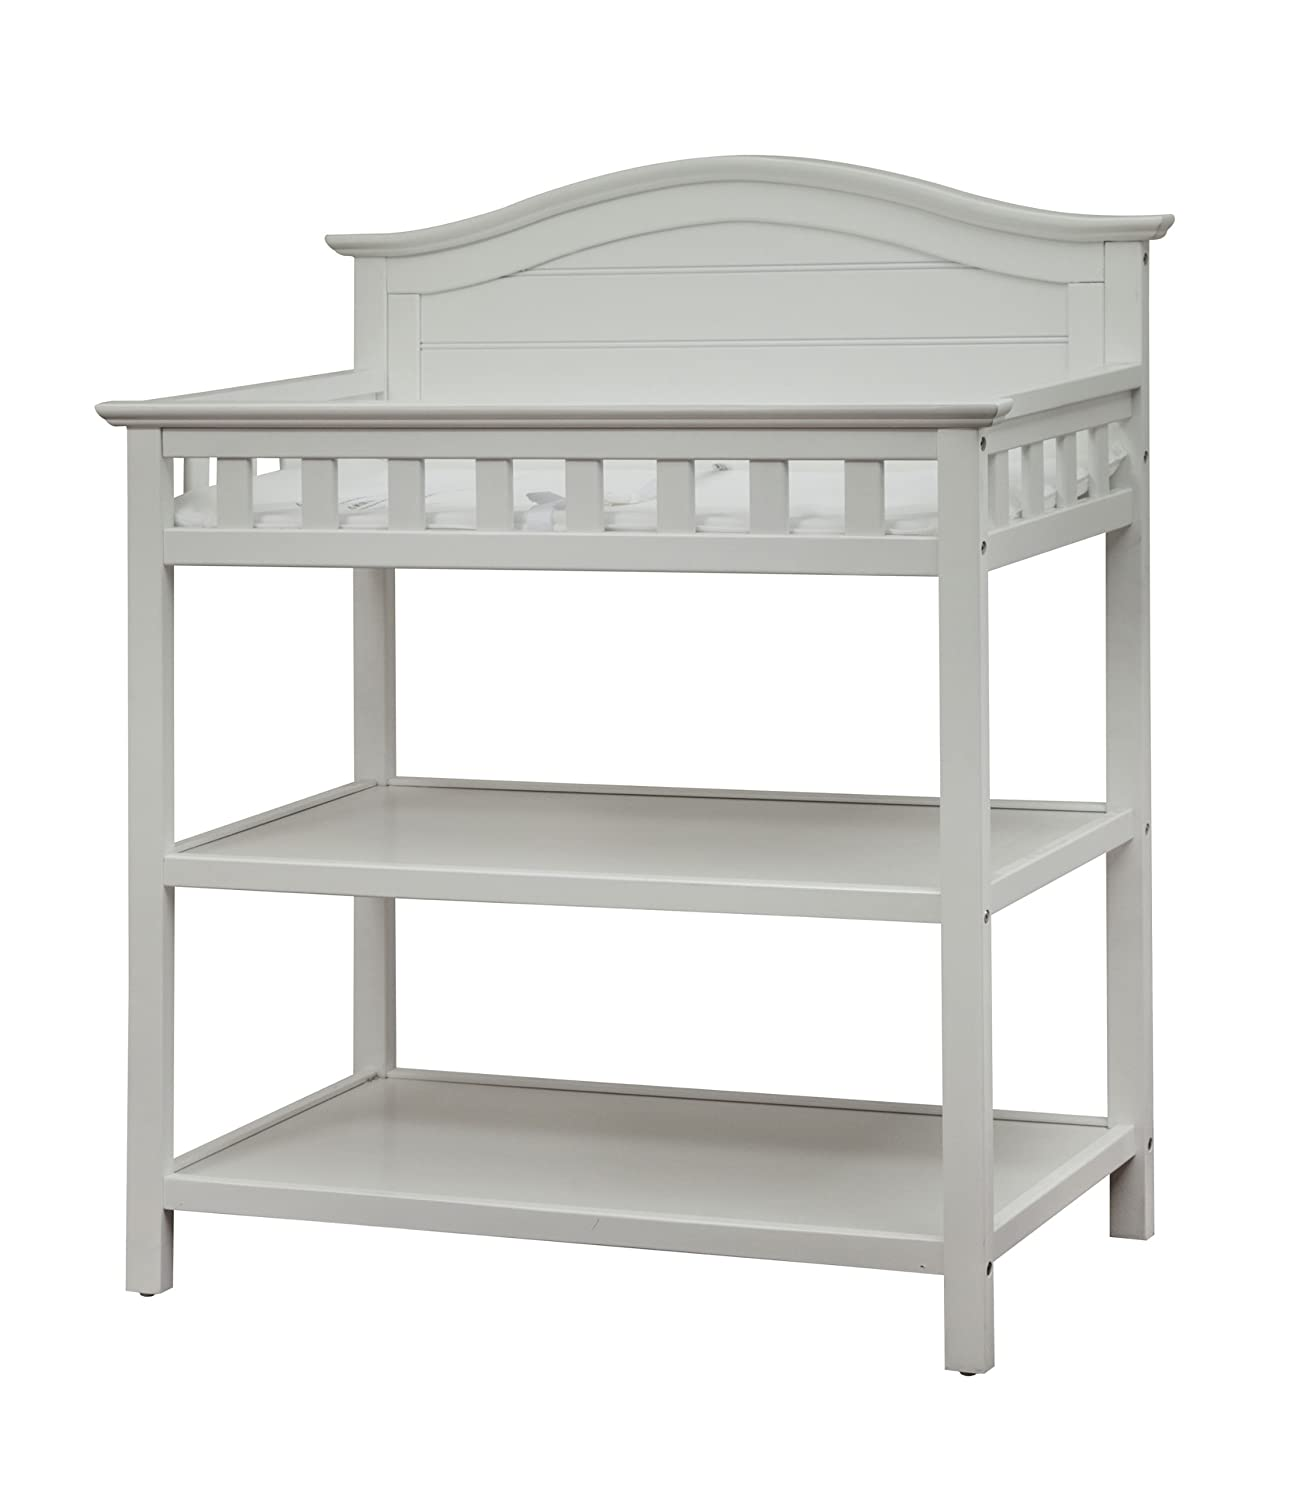 Pebble Gray Safety Strap /& Two Storage Shelves for Infants /& Toddlers Changing Table with Water Resistant Changing Pad Thomasville Kids Southern Dunes Changing Table